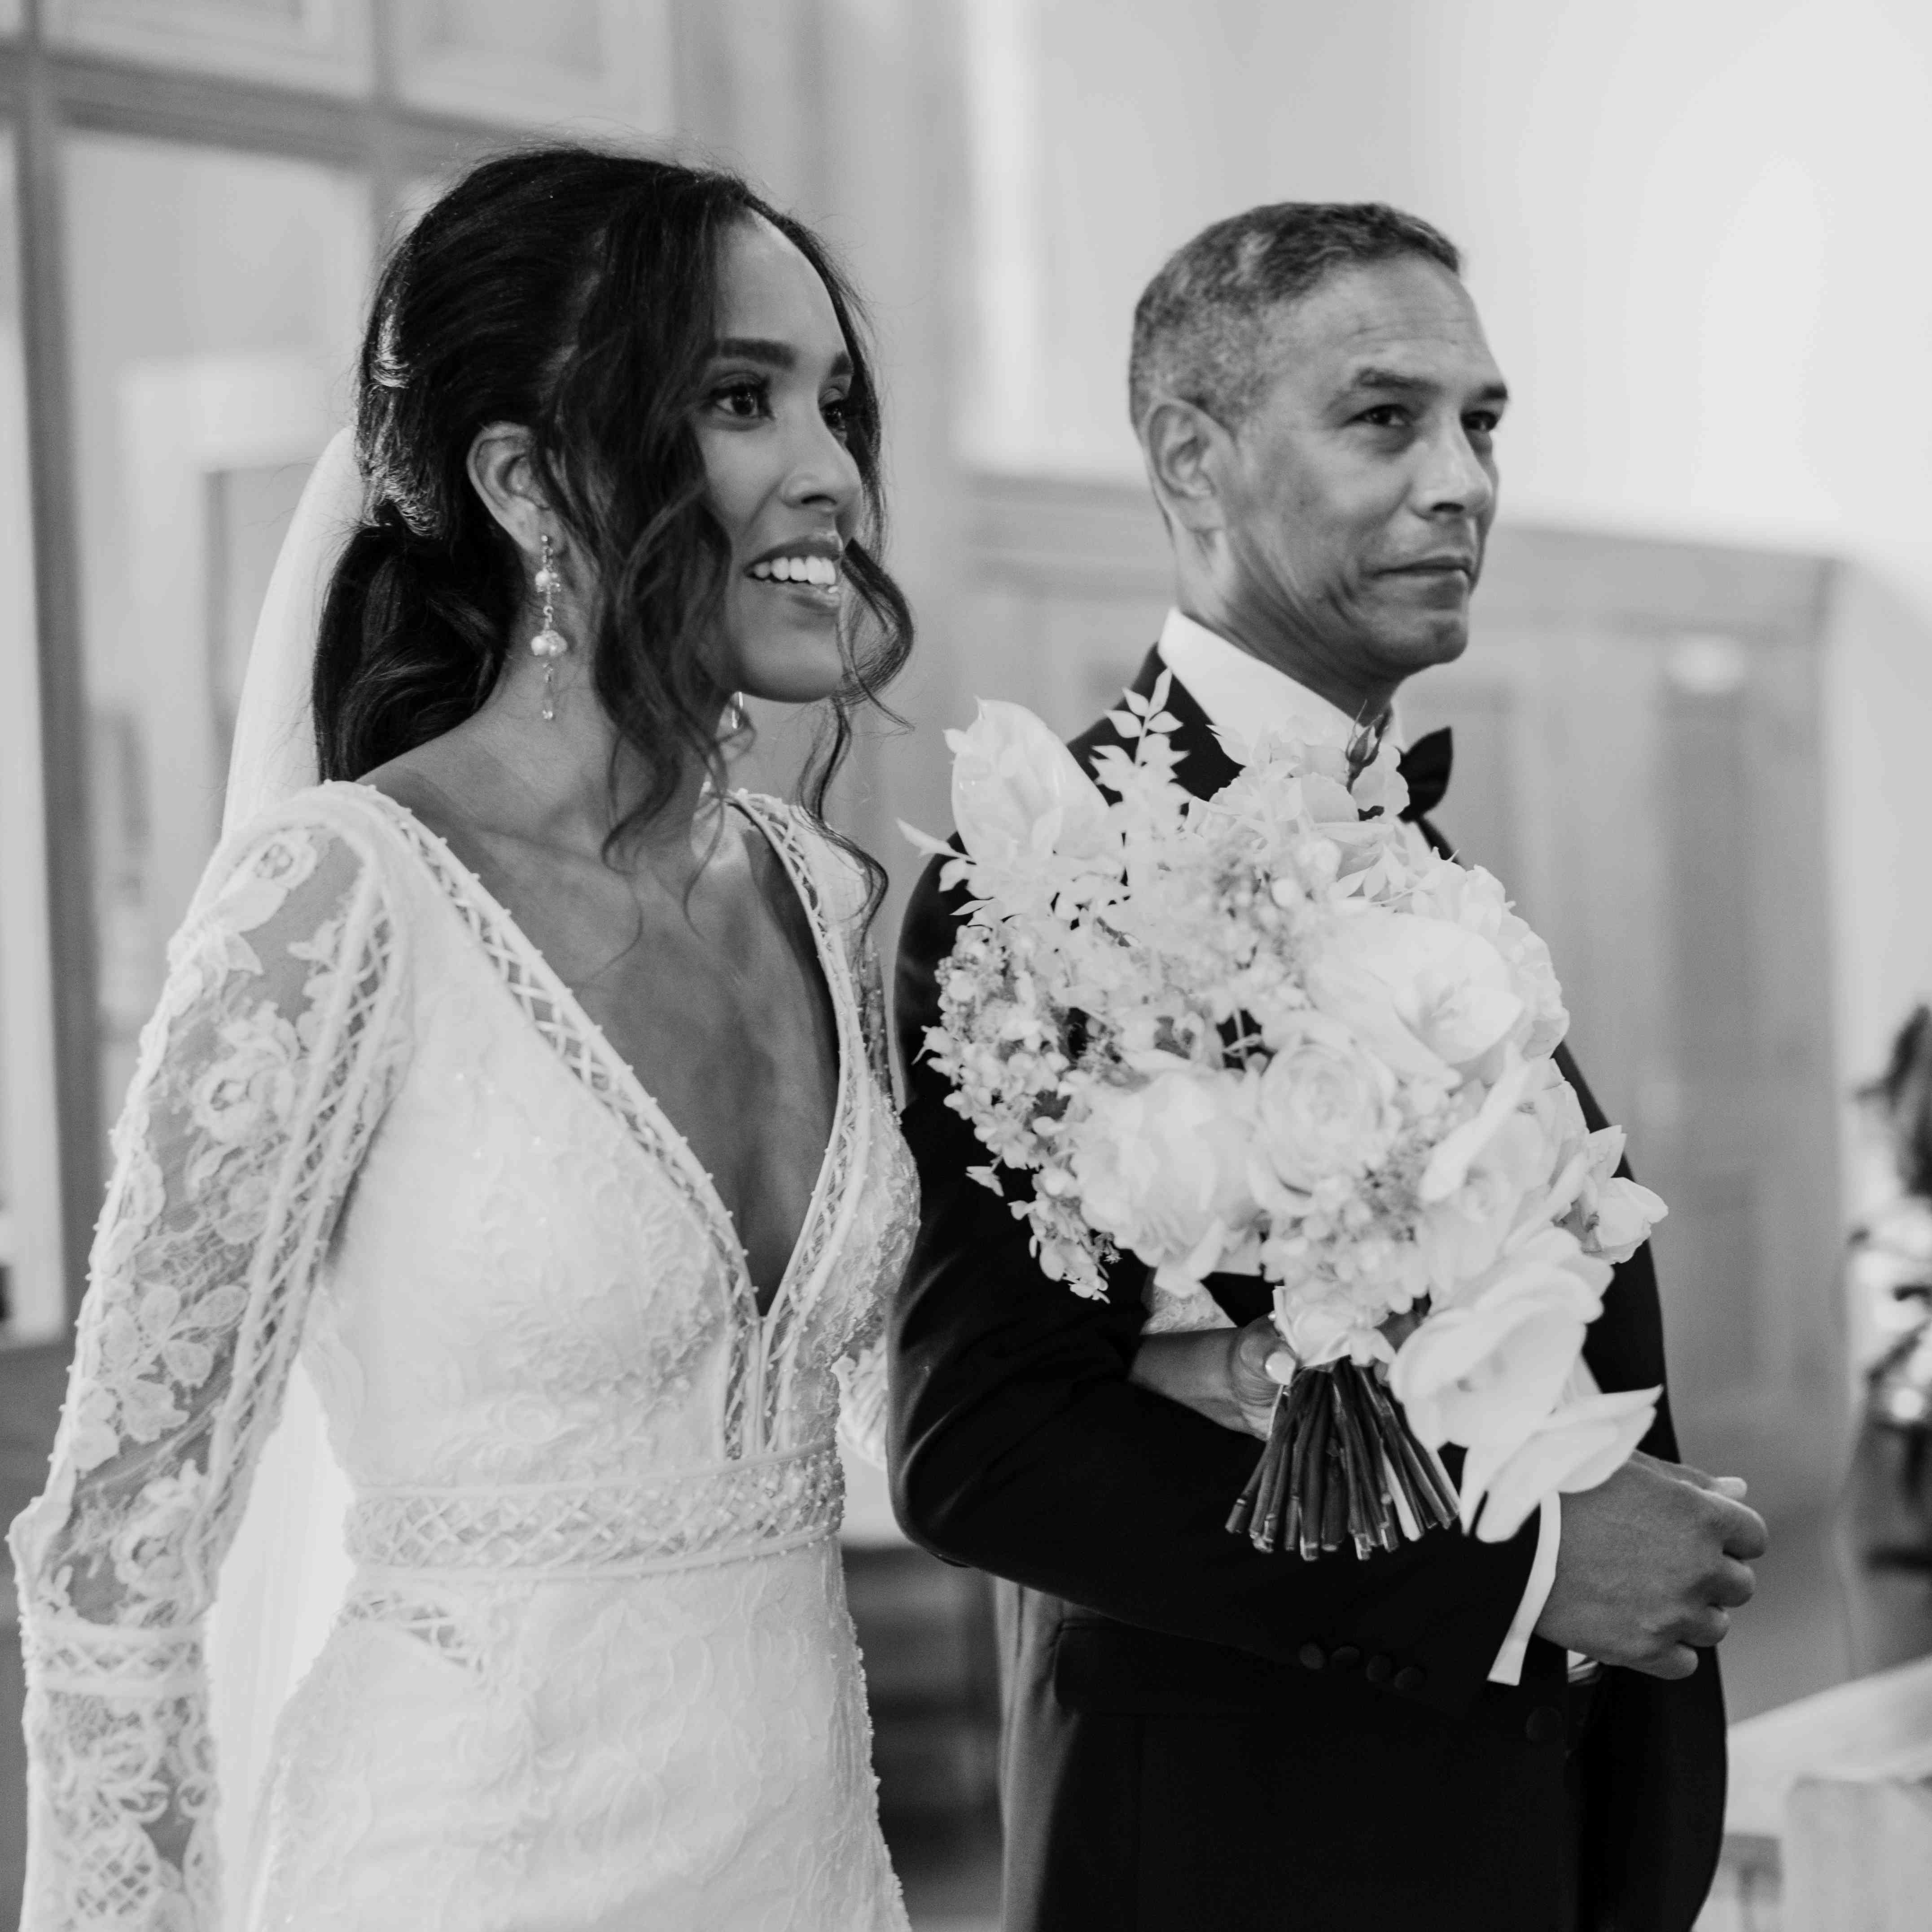 The bride walks down aisel with her father